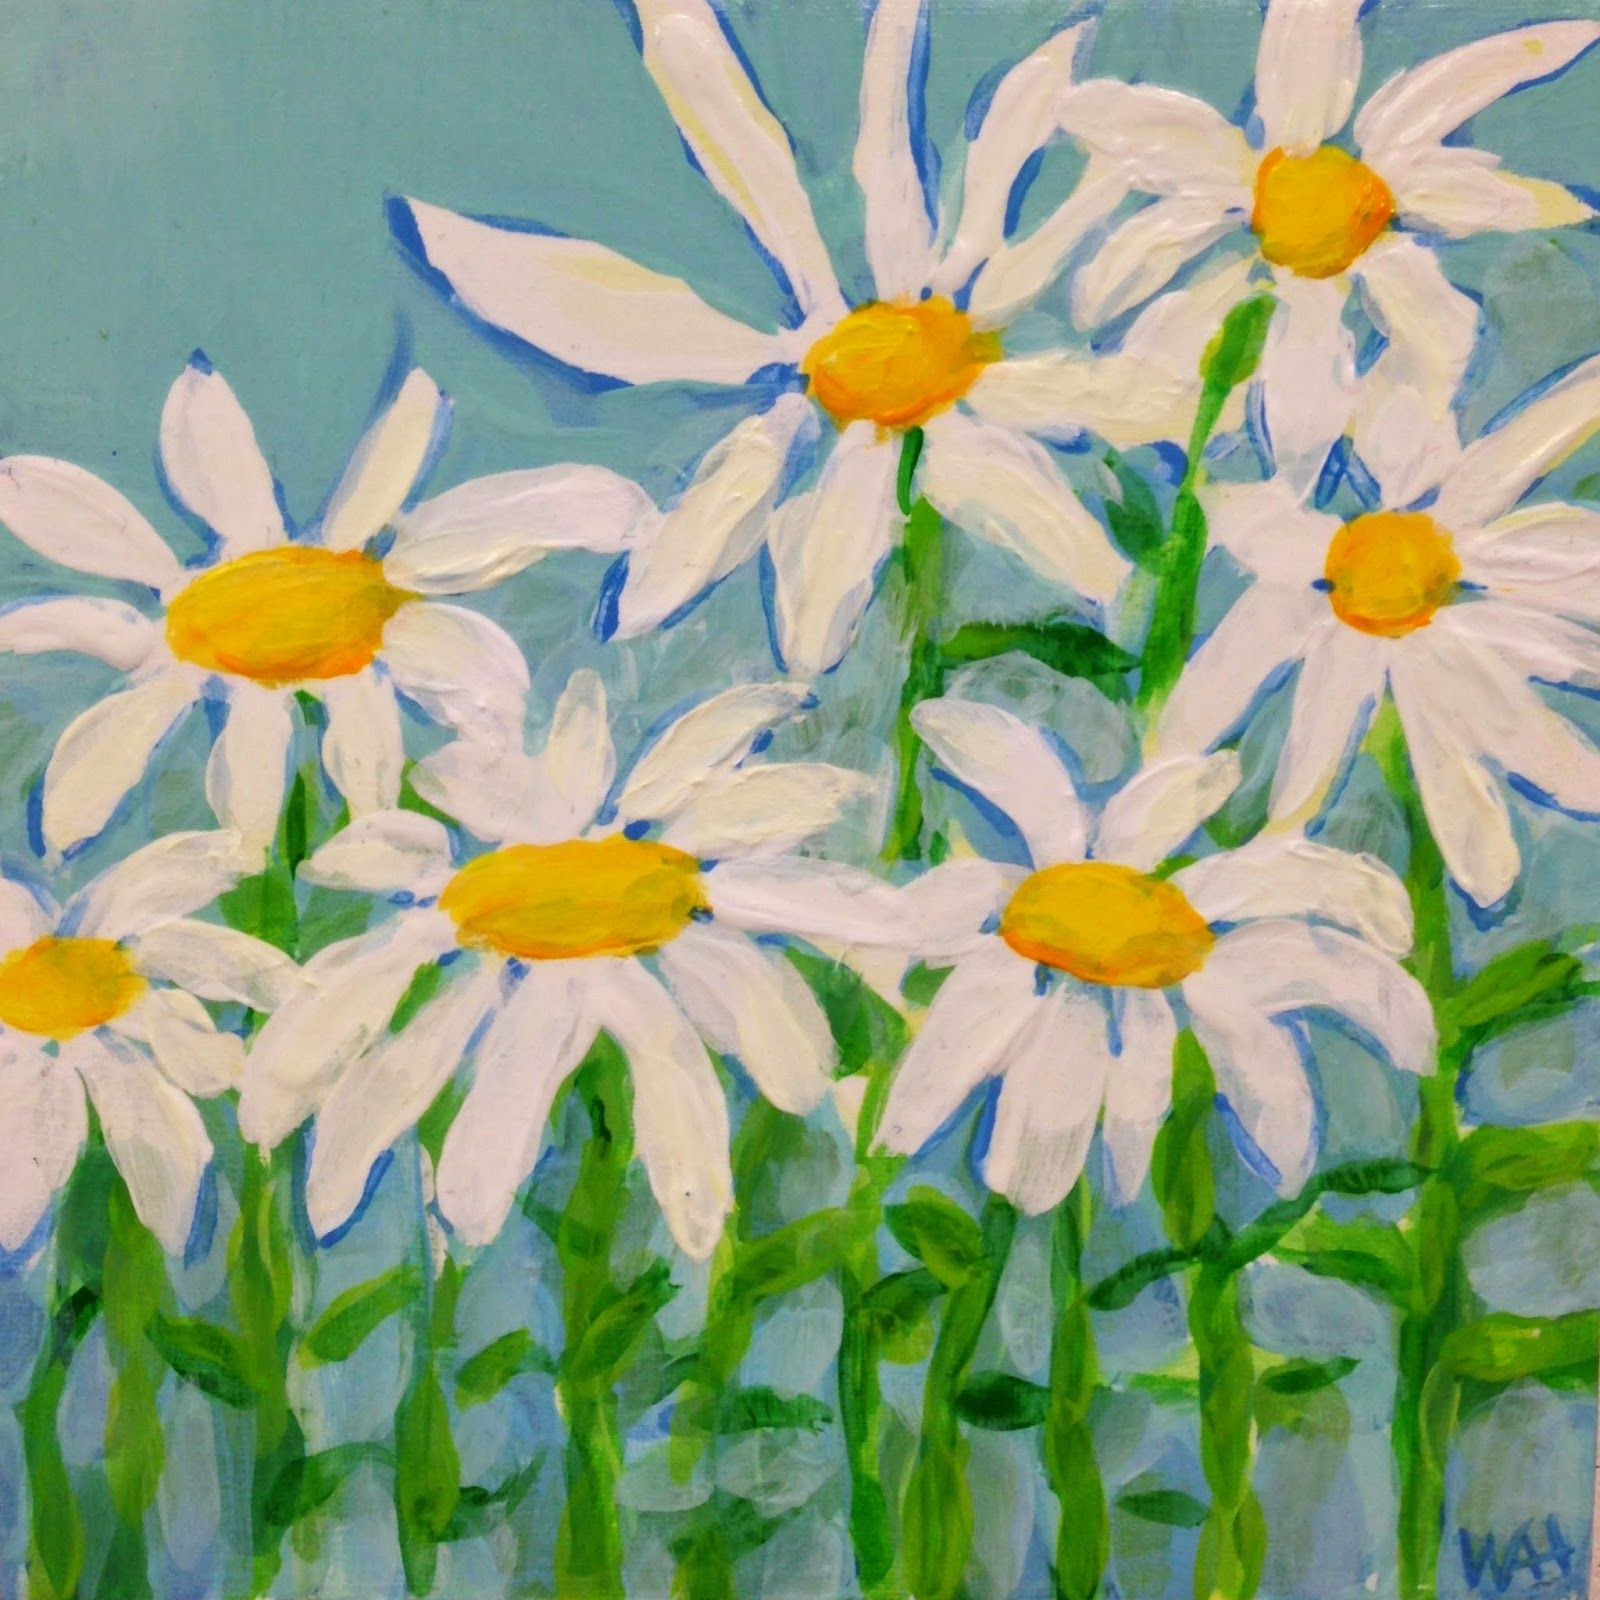 Whitney Alexanderson Heavey Daily Painting #3 Summer Daisies